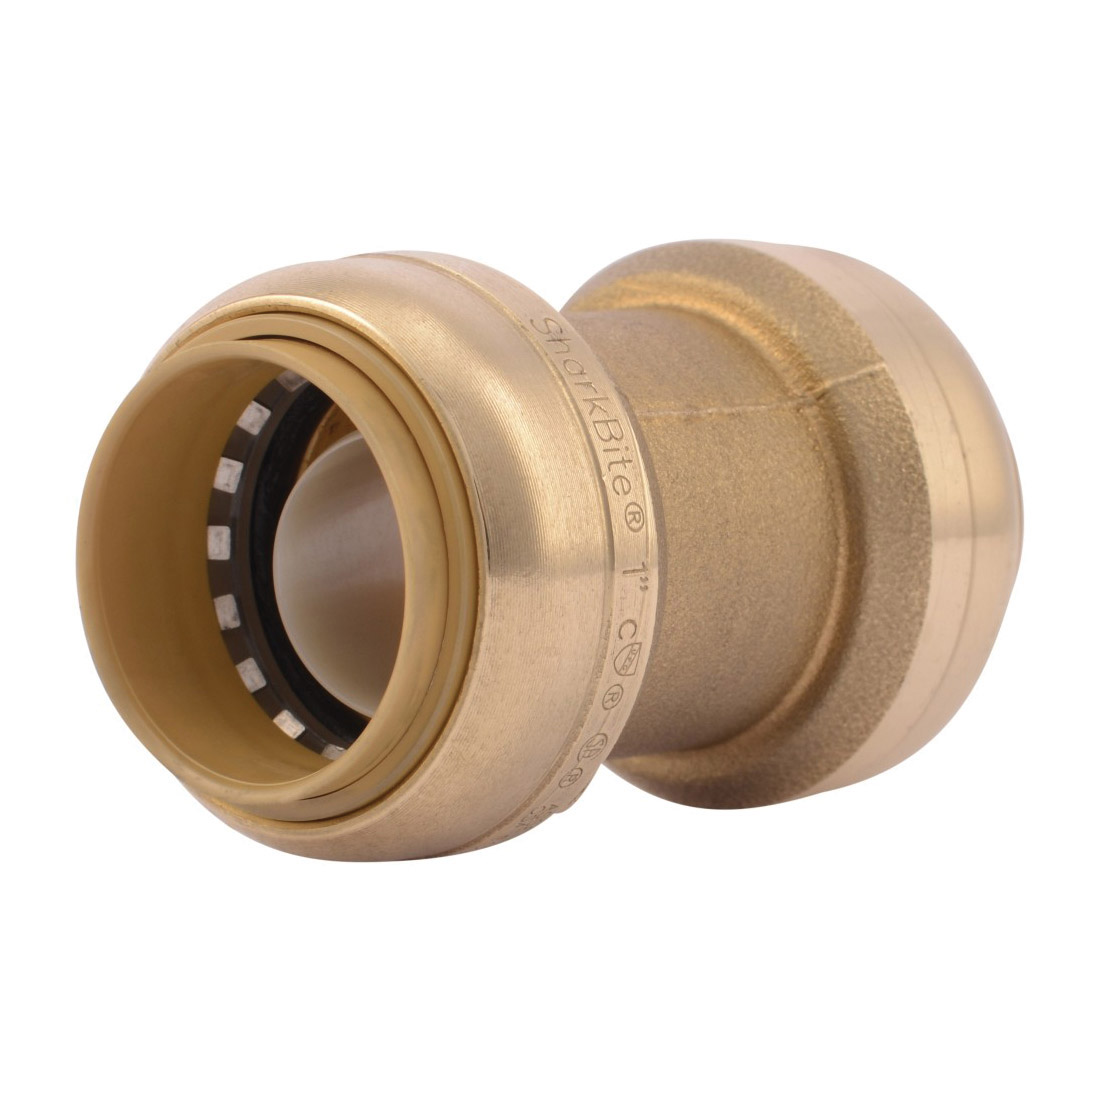 Sharkbite® U020LF Straight Pipe Coupling, 1 in Nominal, Push-Fit End Style, Brass, Natural Brass/Polished Chrome, Import